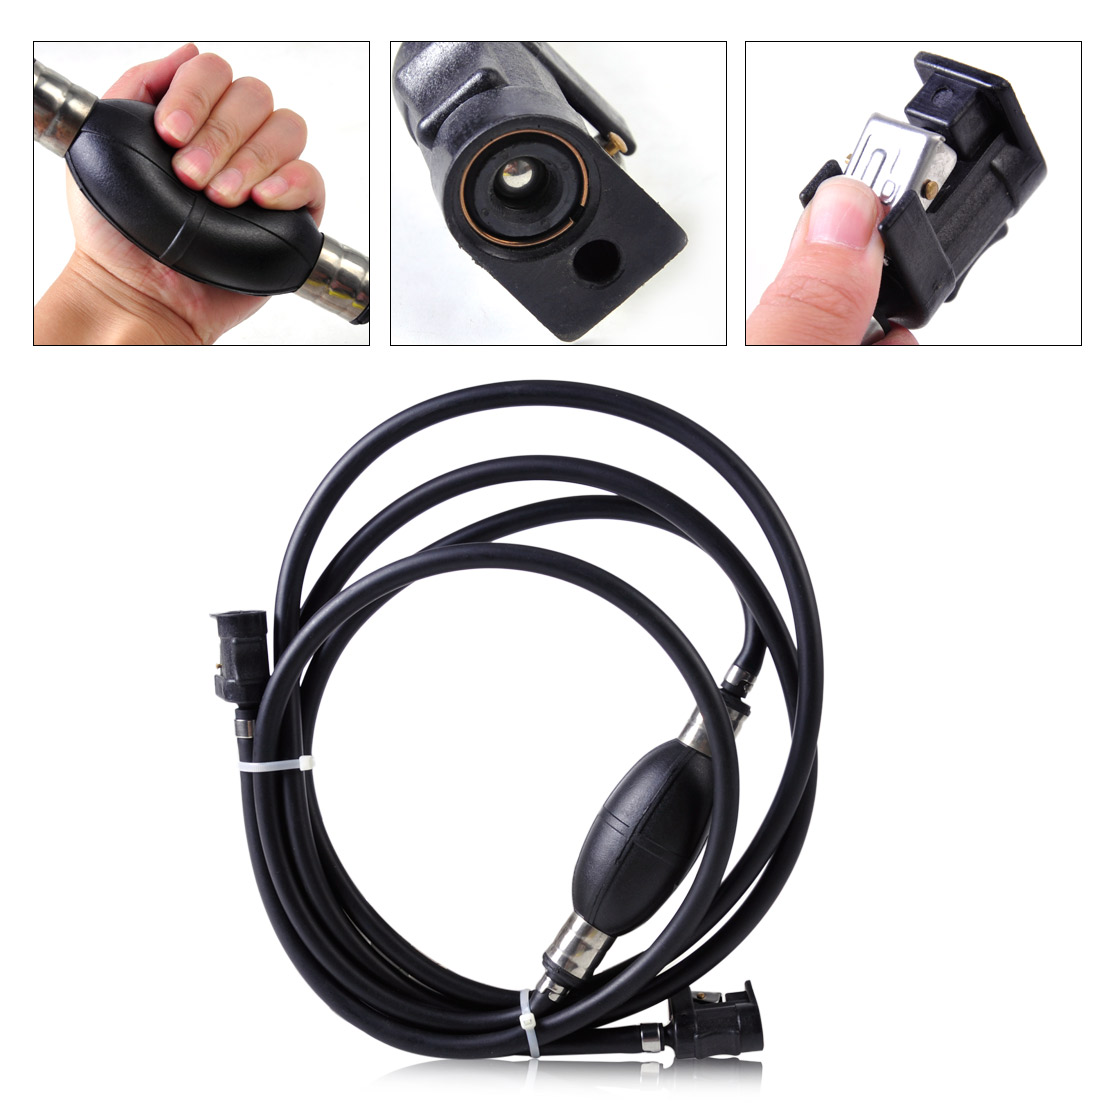 dwcx motor 6mm black fuel line hose boat primer bulb kit assembly outboard tank connectors for yamaha mariner johnson mercury in pumps from automobiles  [ 1110 x 1110 Pixel ]